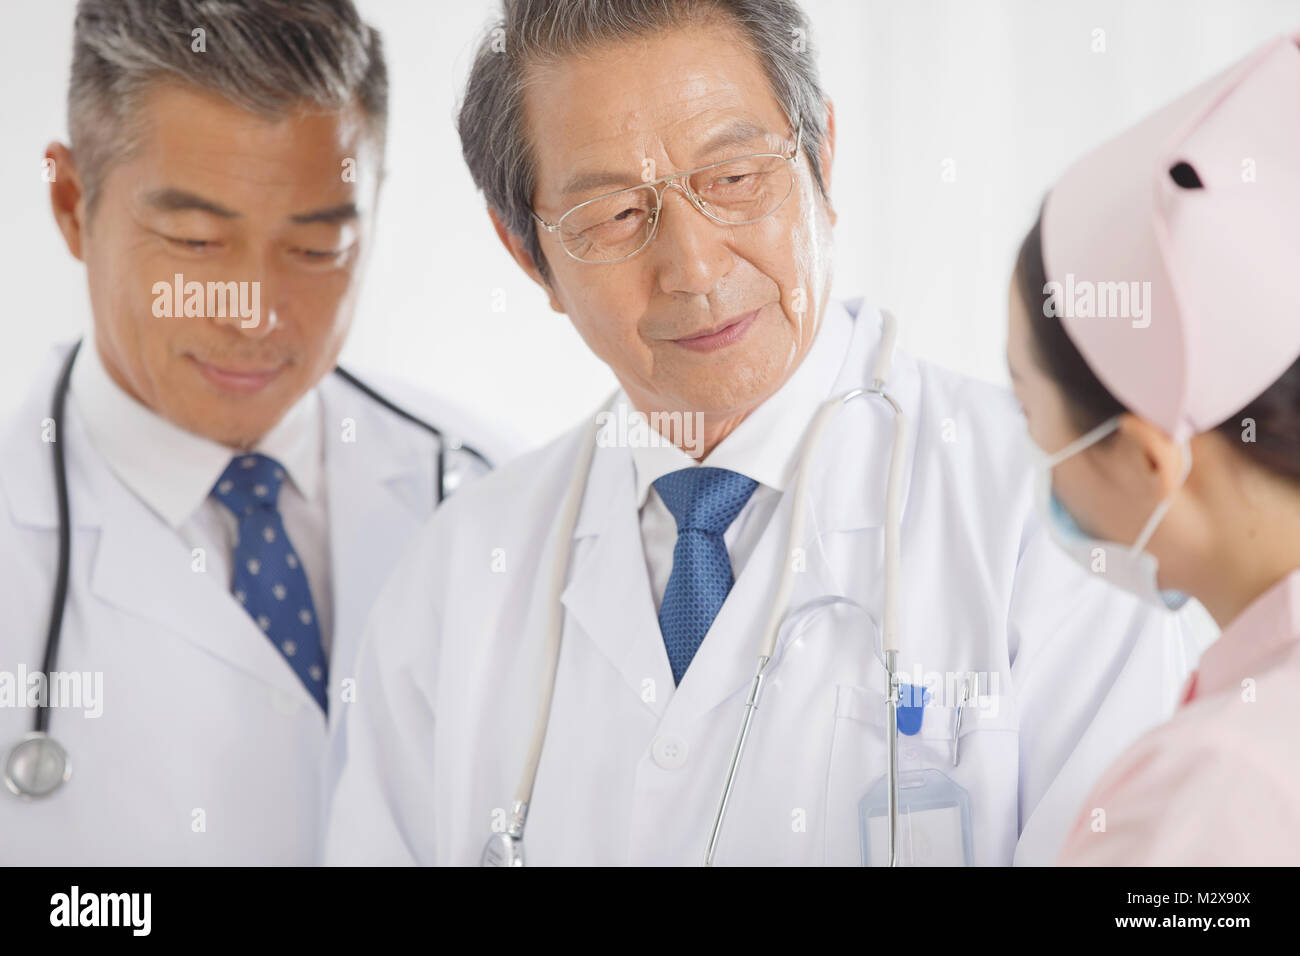 Medical workers - Stock Image